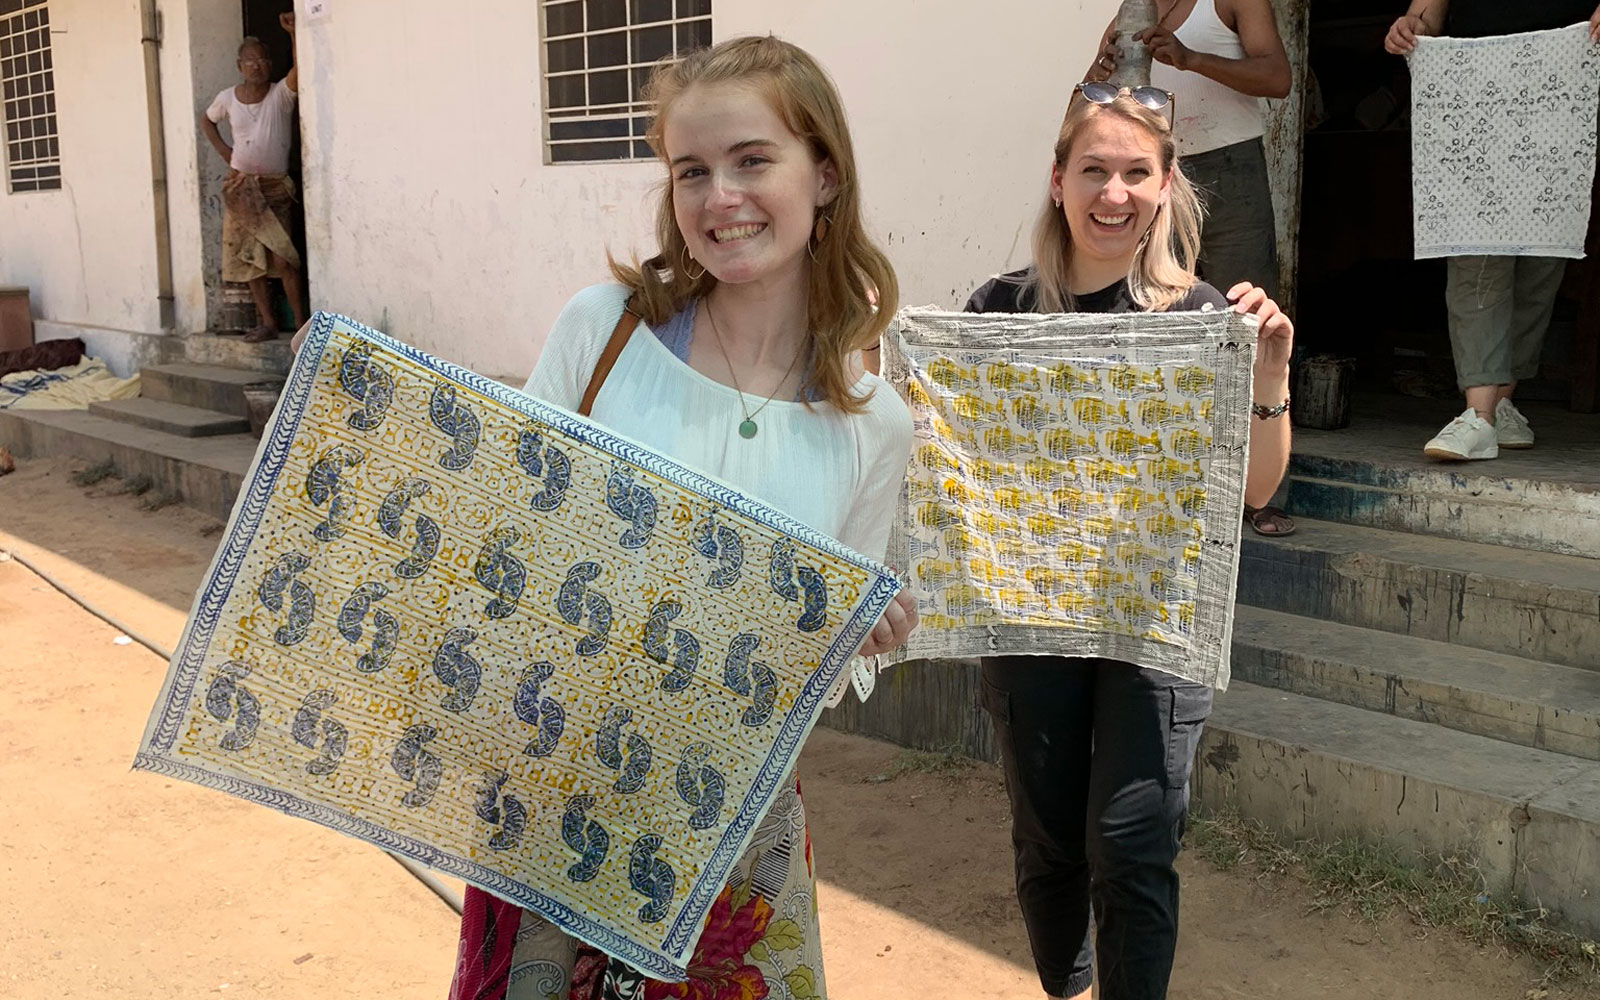 Spring 2019 Apprentice Programme participants pose with their own hand block print creations